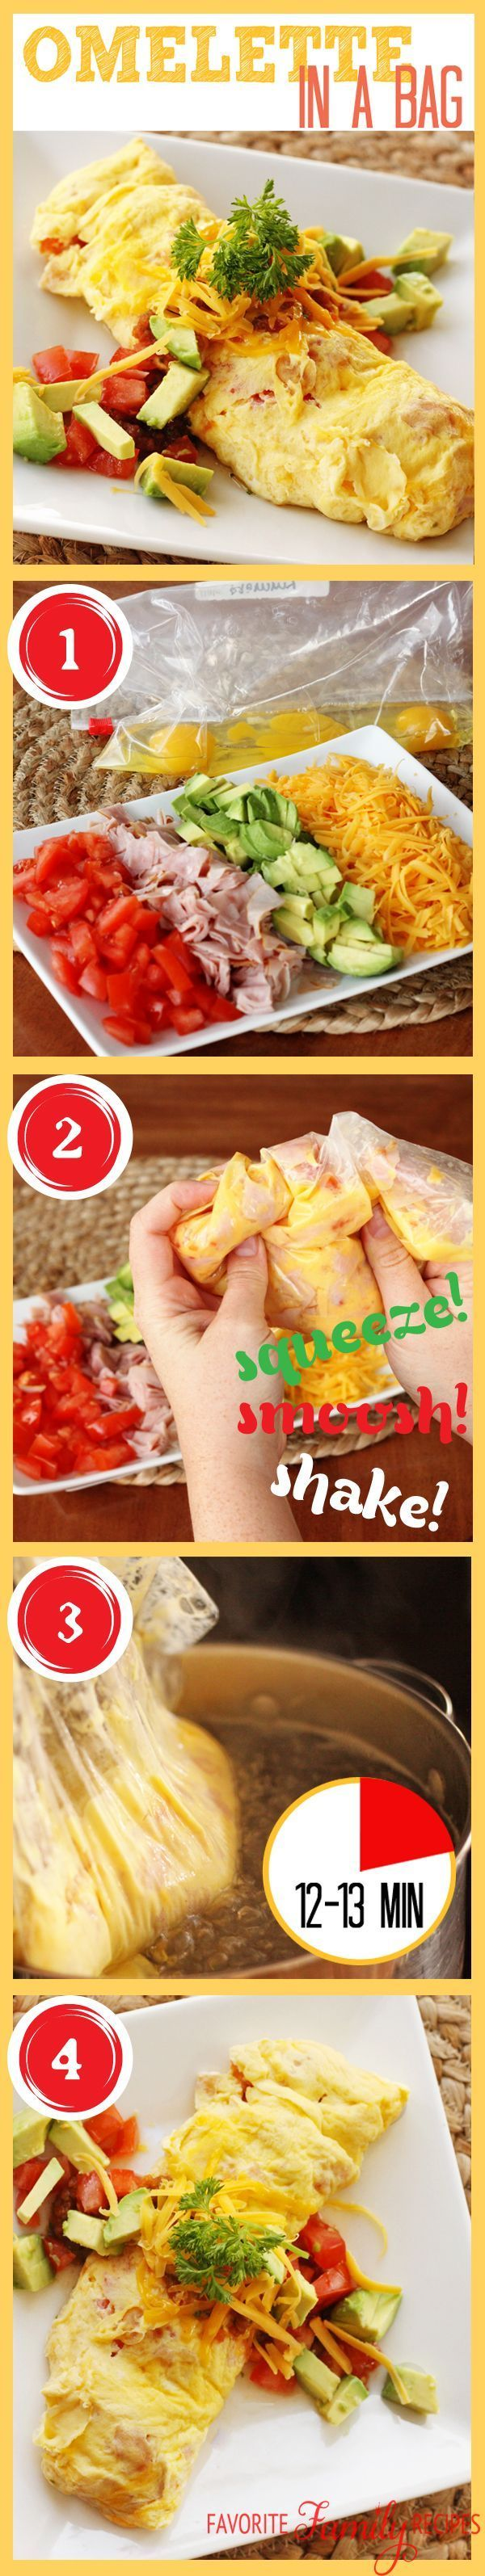 Whether camping, at a reunion, or at home wanting to switch things up, you just can't lose with an Omelette in a Bag! The best part.. virtually no clean-up!